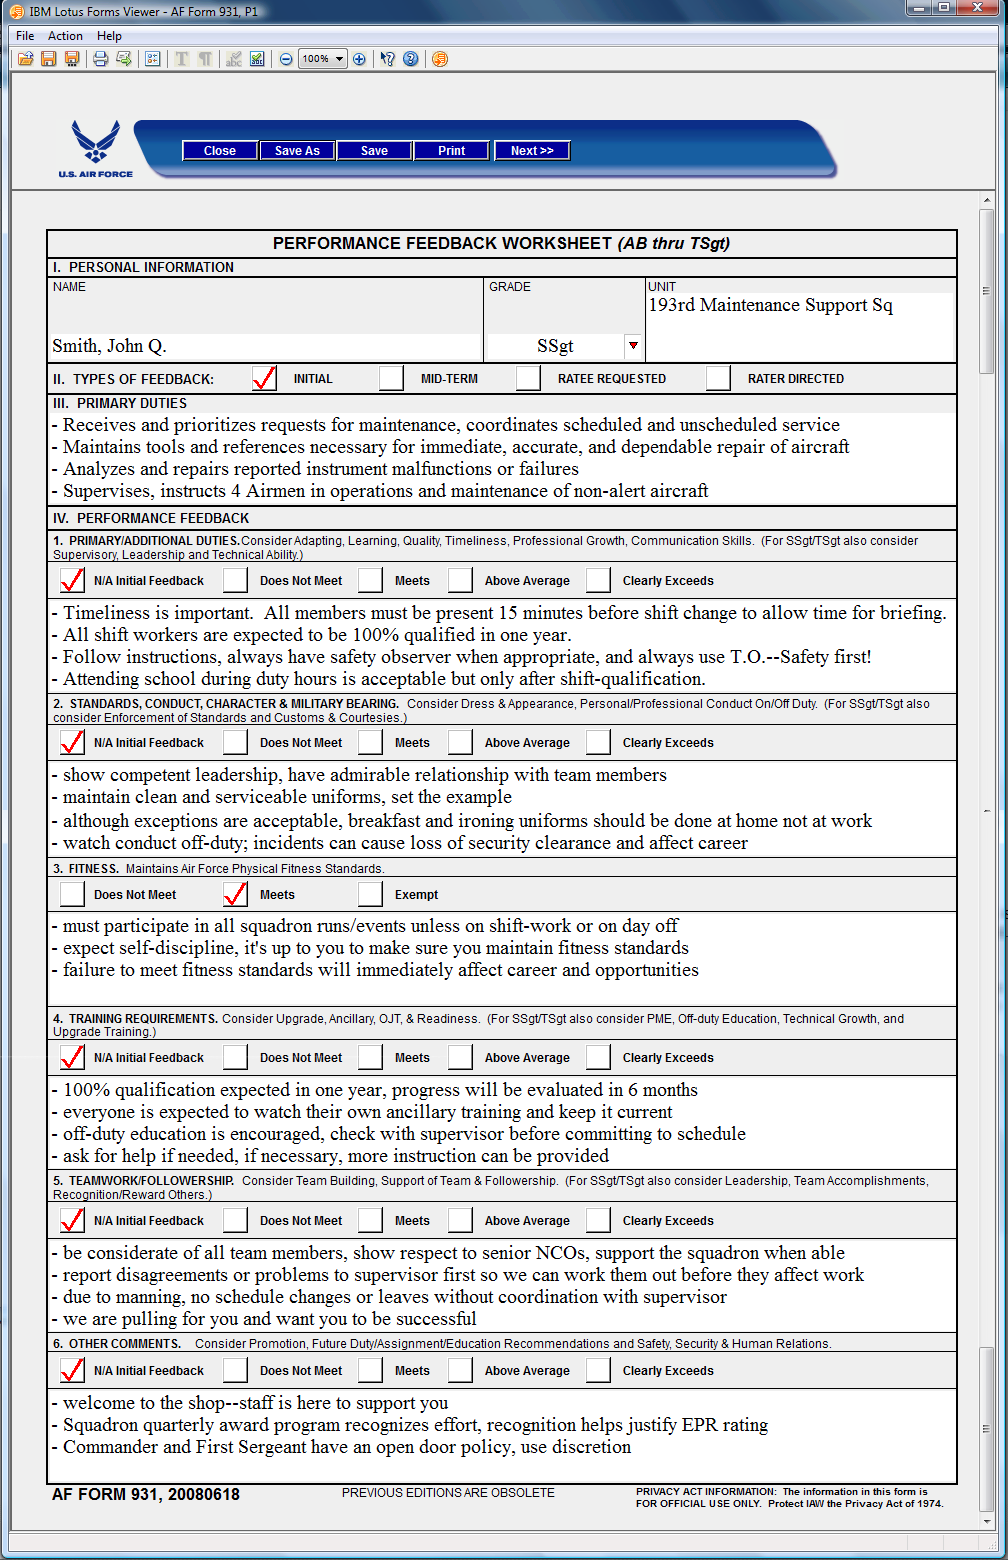 Printables Performance Feedback Worksheet af form 931 feedback example 1 performance worksheet